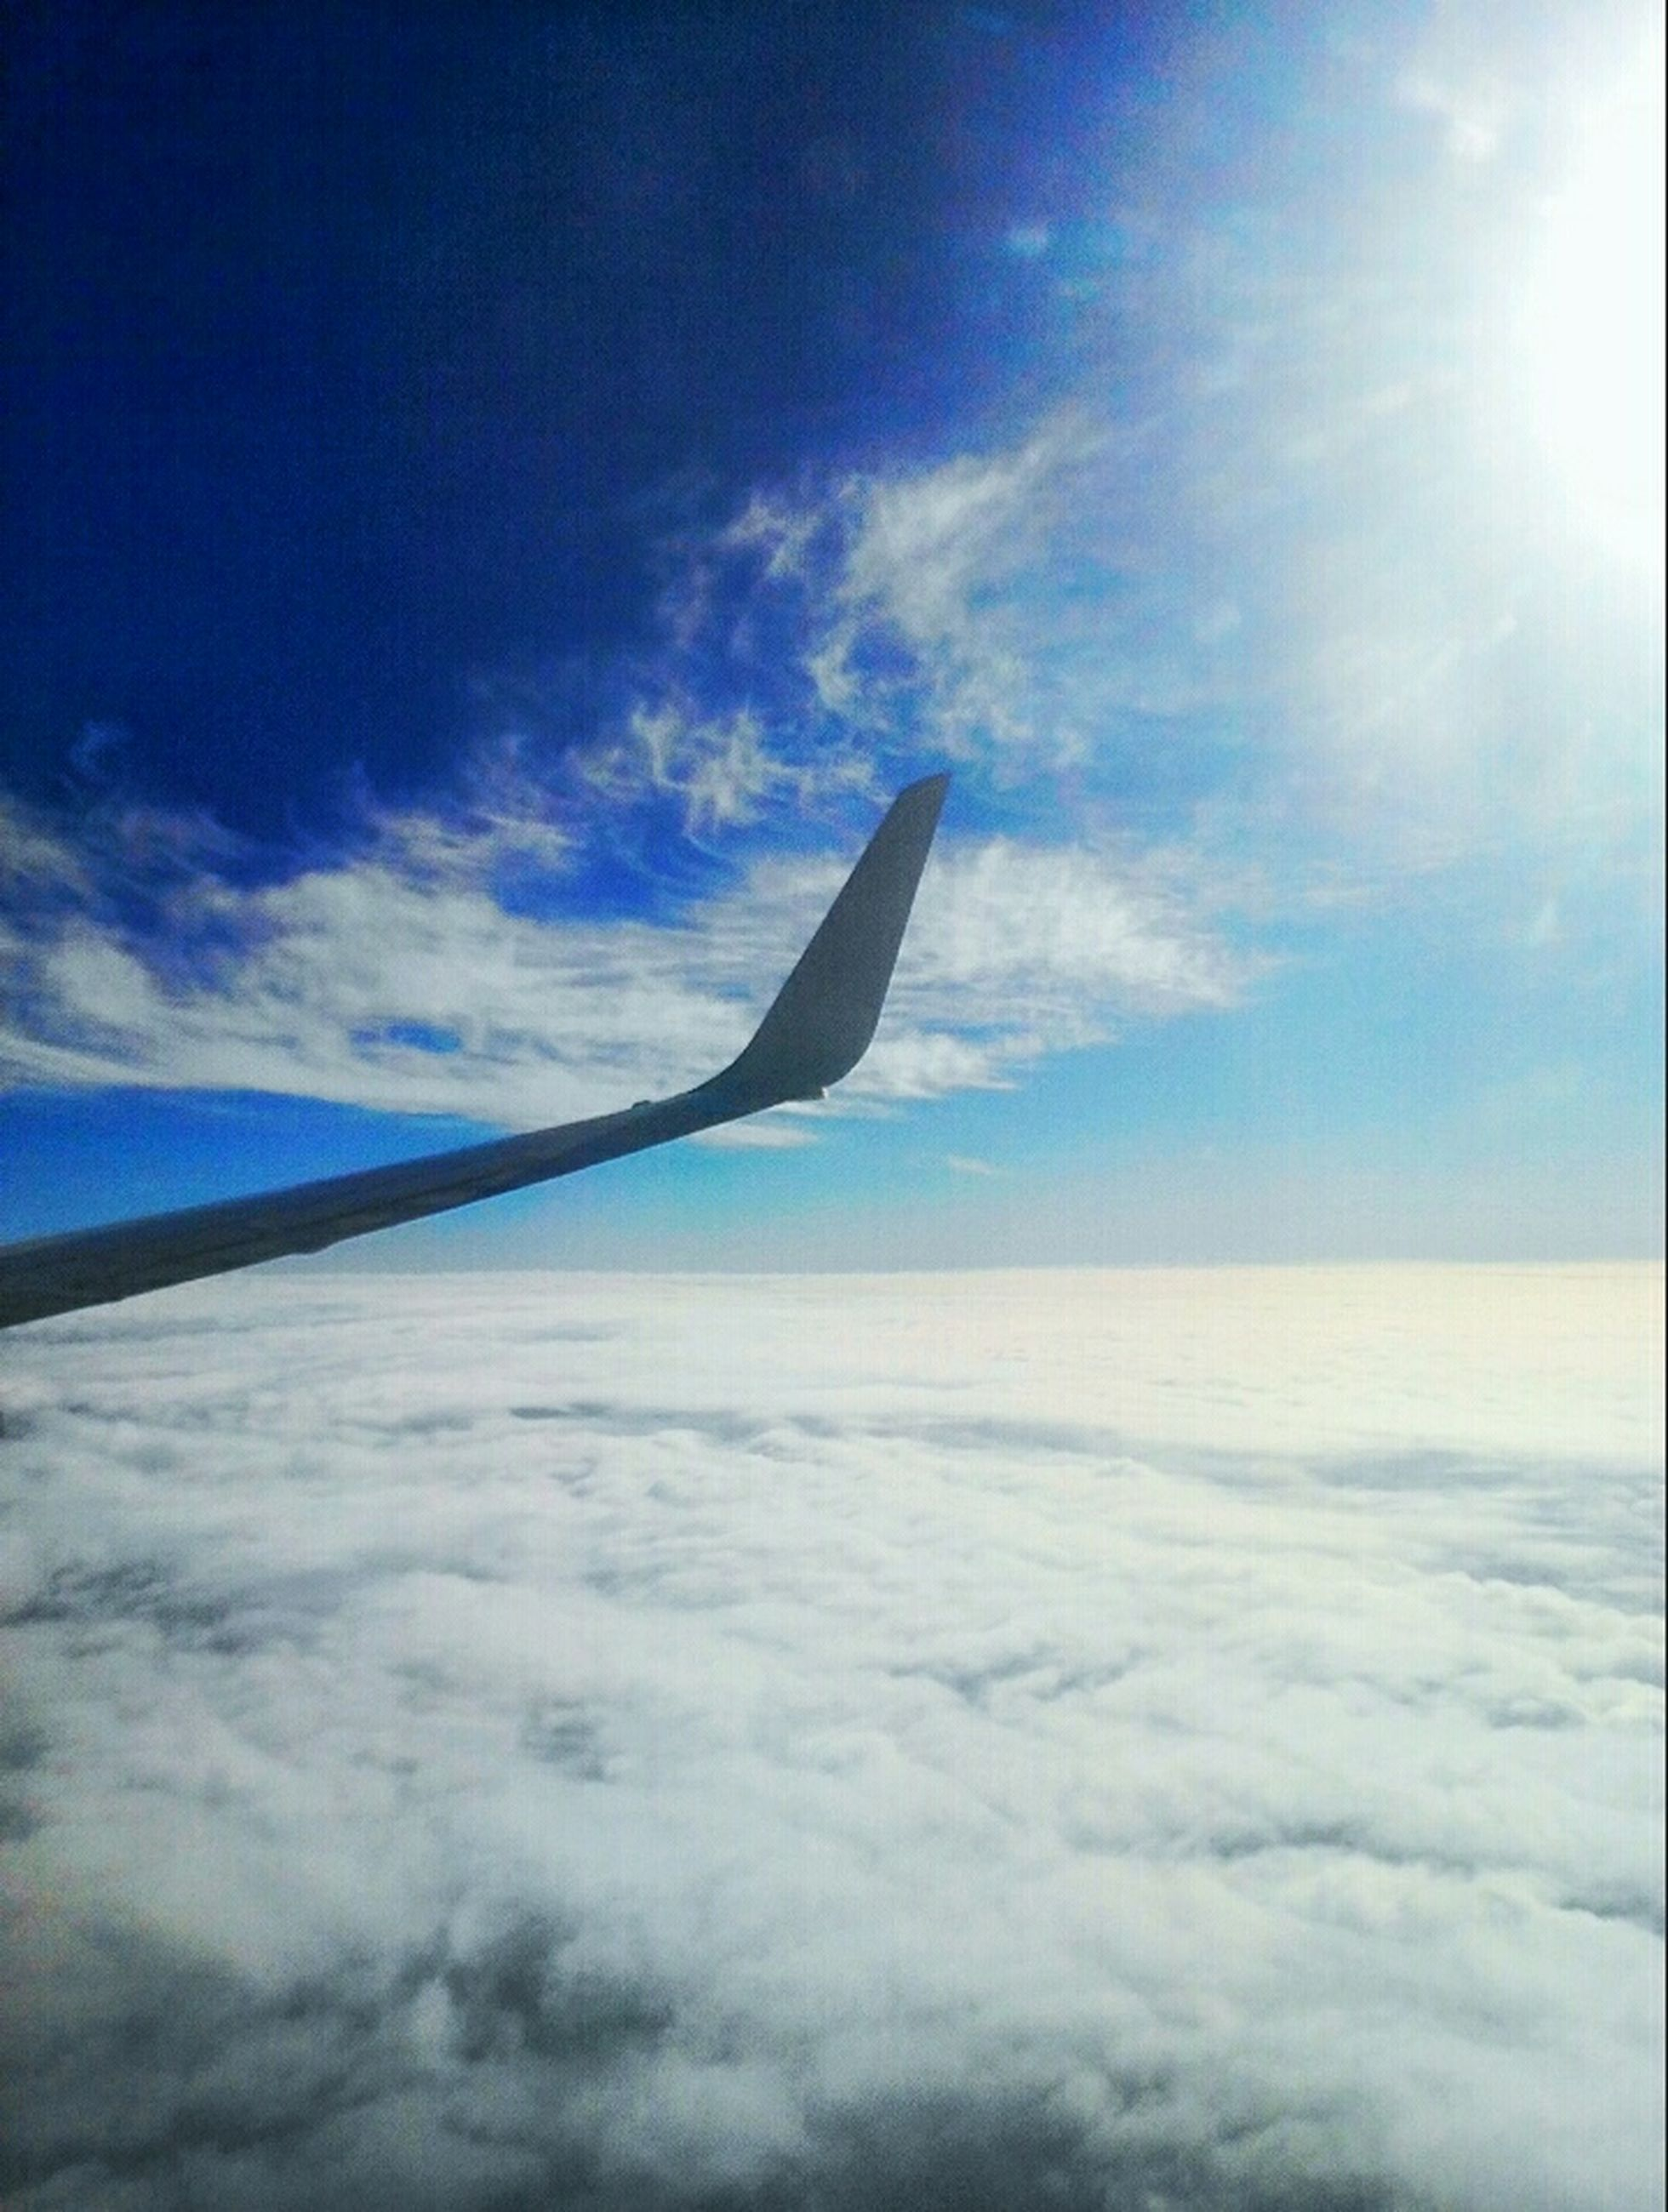 flying, airplane, sky, transportation, air vehicle, aircraft wing, blue, mode of transport, mid-air, cloud - sky, beauty in nature, part of, nature, sea, scenics, travel, cloud, cropped, on the move, tranquil scene